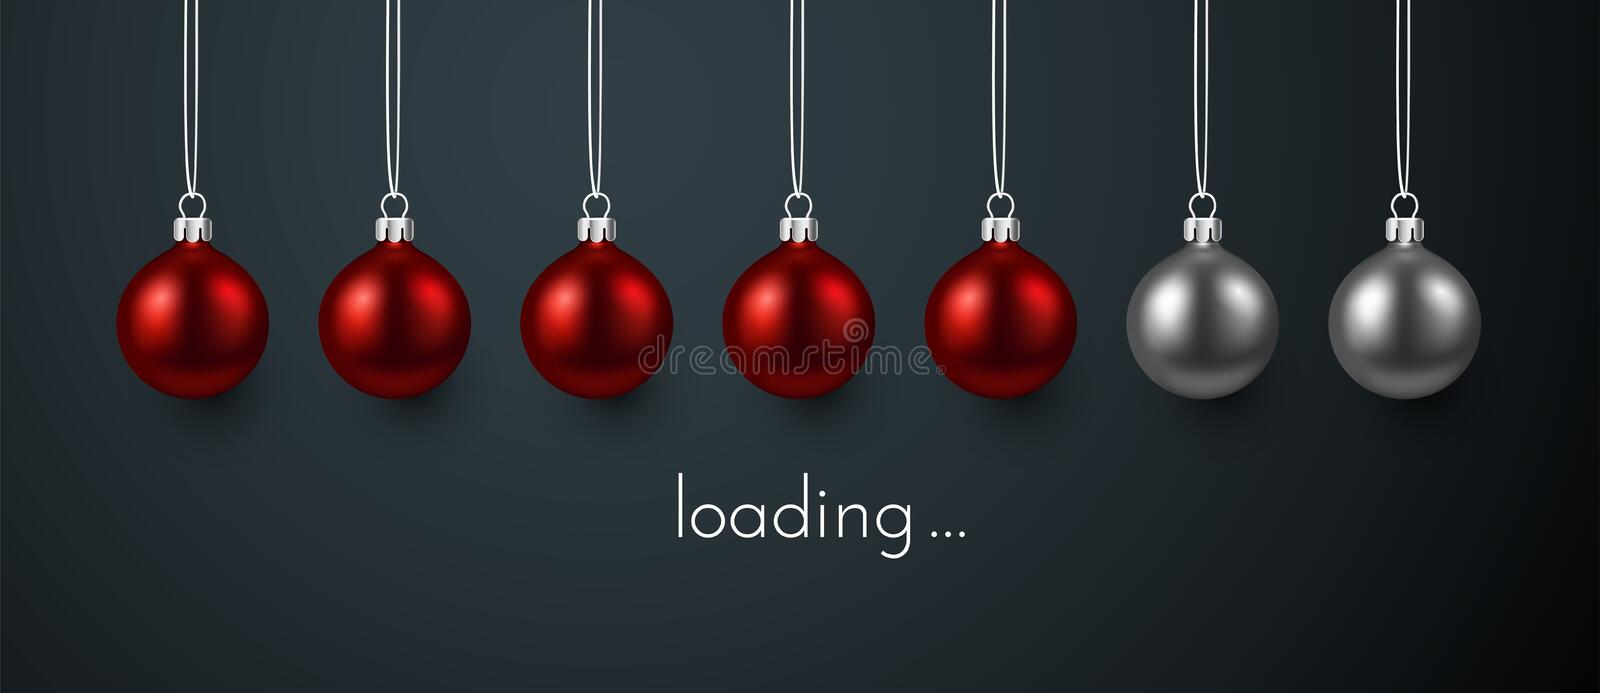 Loading Christmas or New Year poster with red Christmas balls. Loading Christmas or New Year festive poster with progress indicator made of red Christmas balls stock illustration